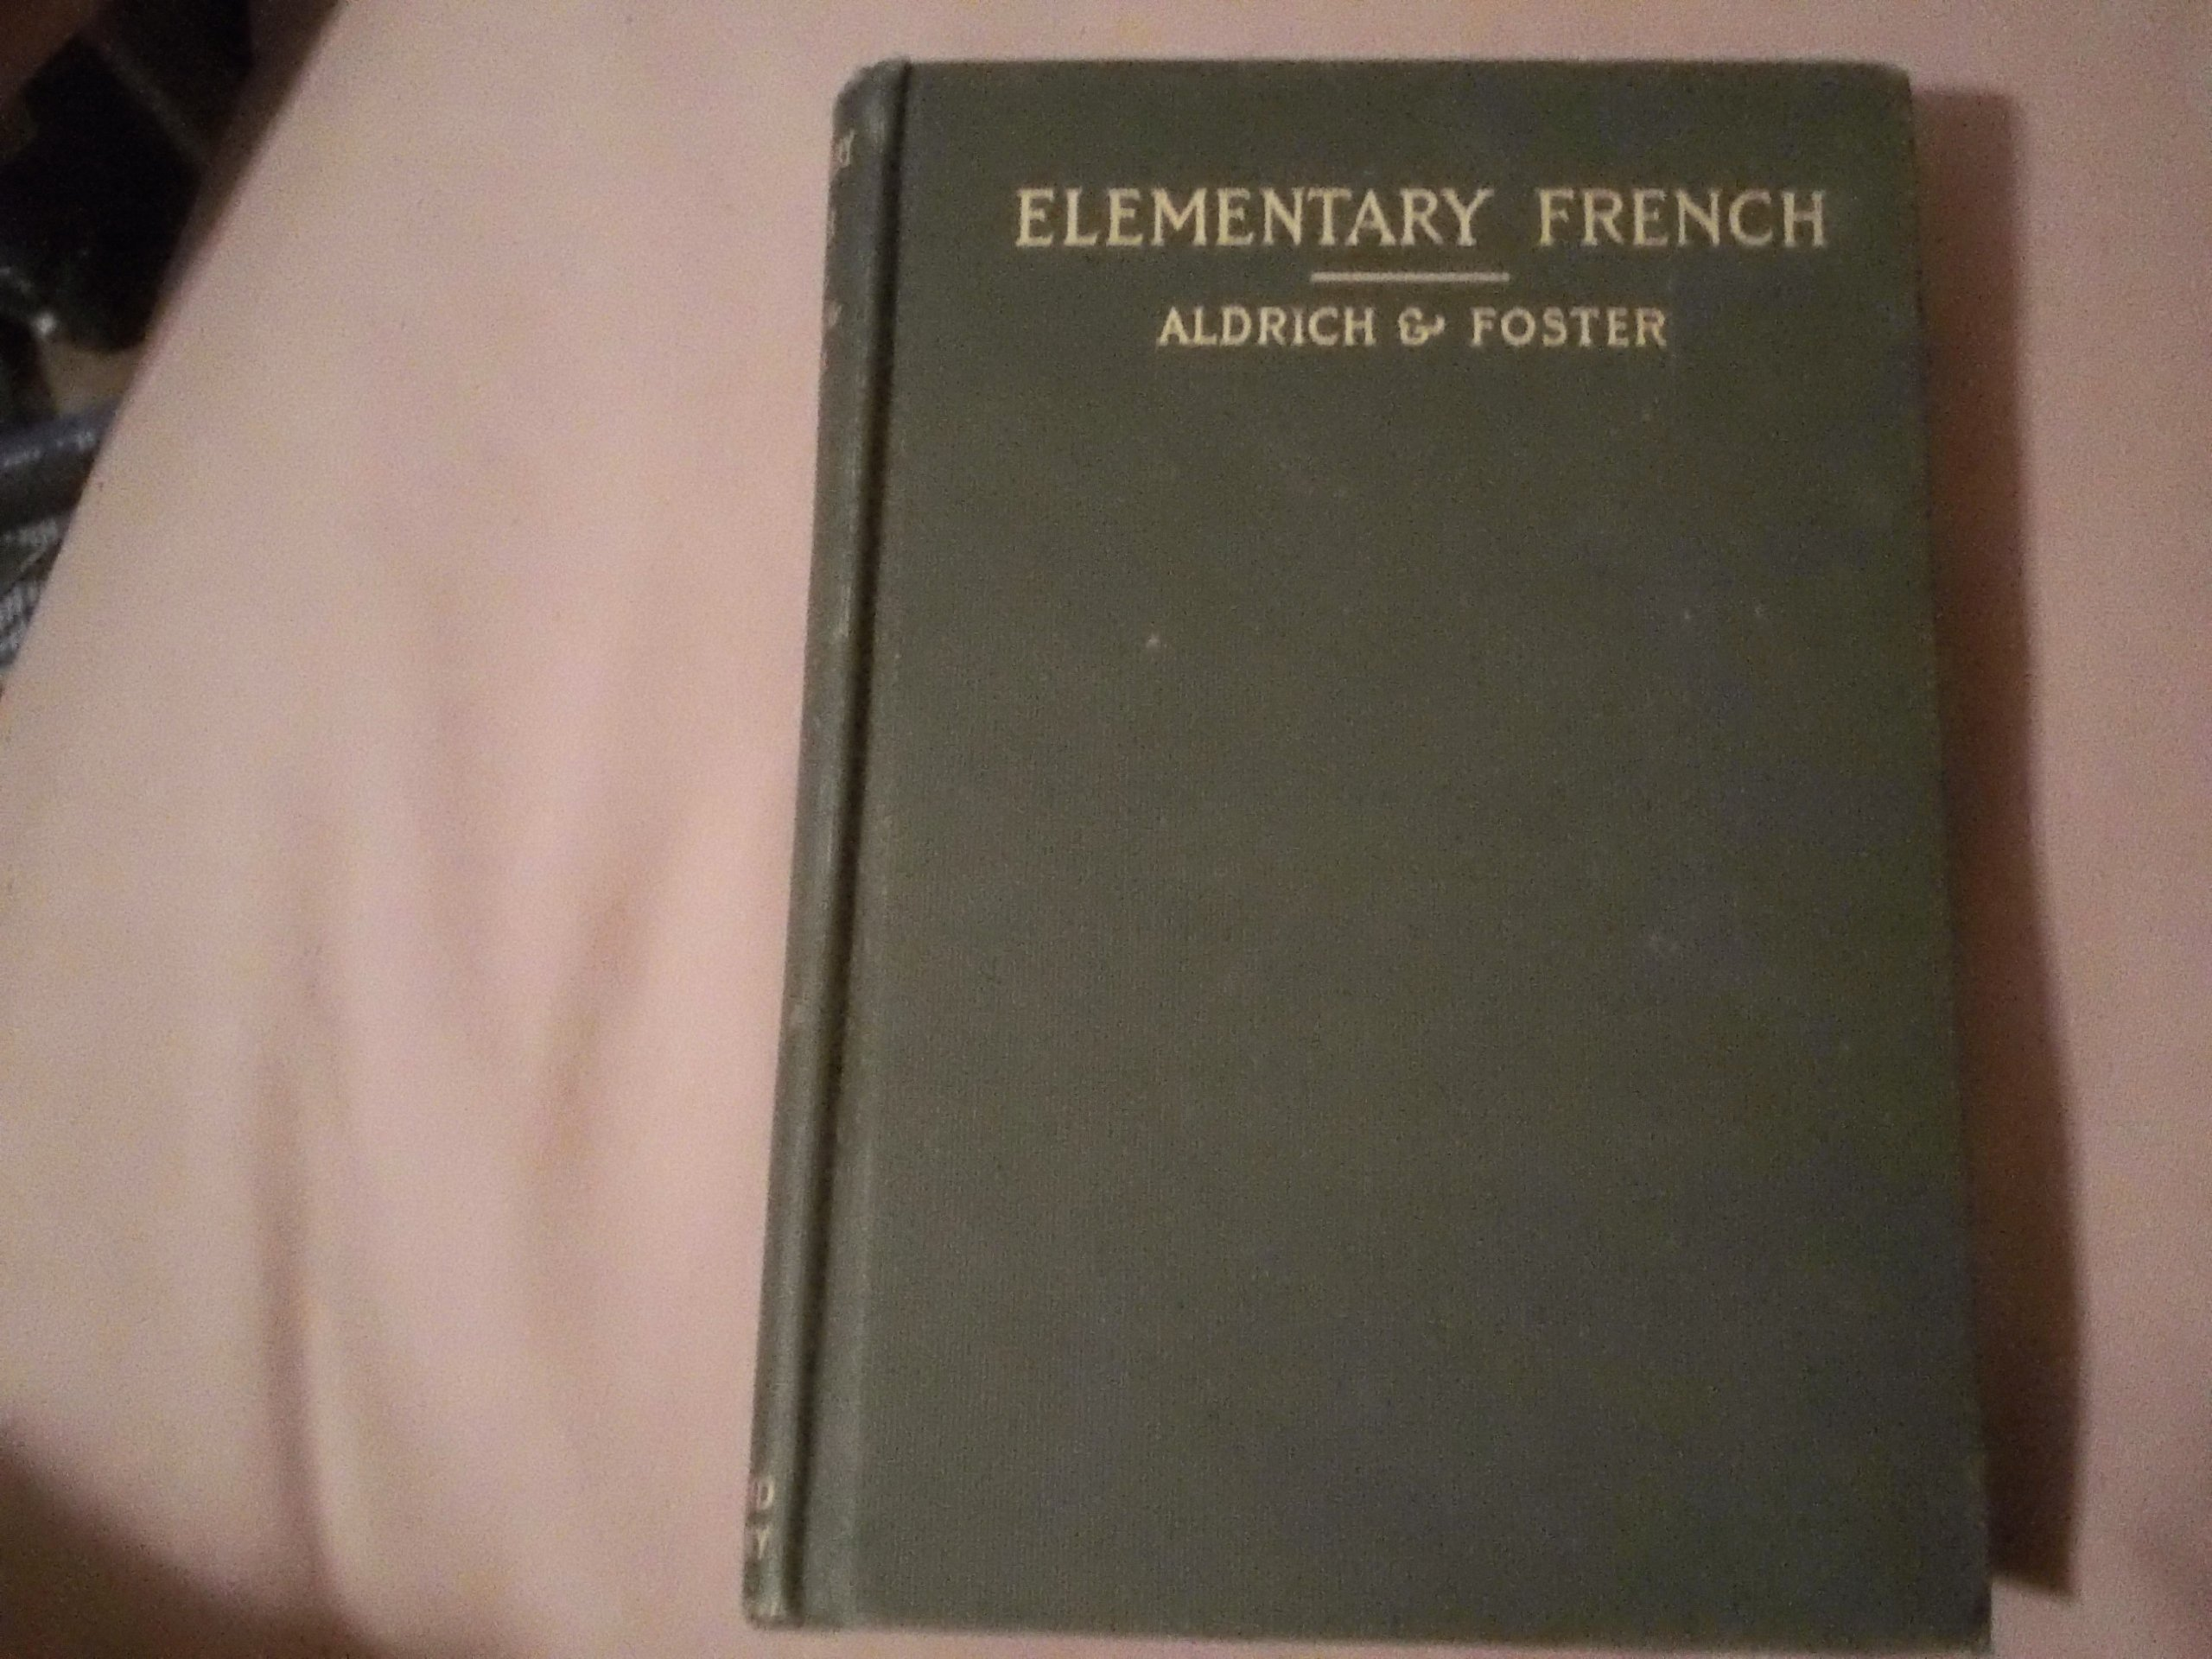 Elementary French book image